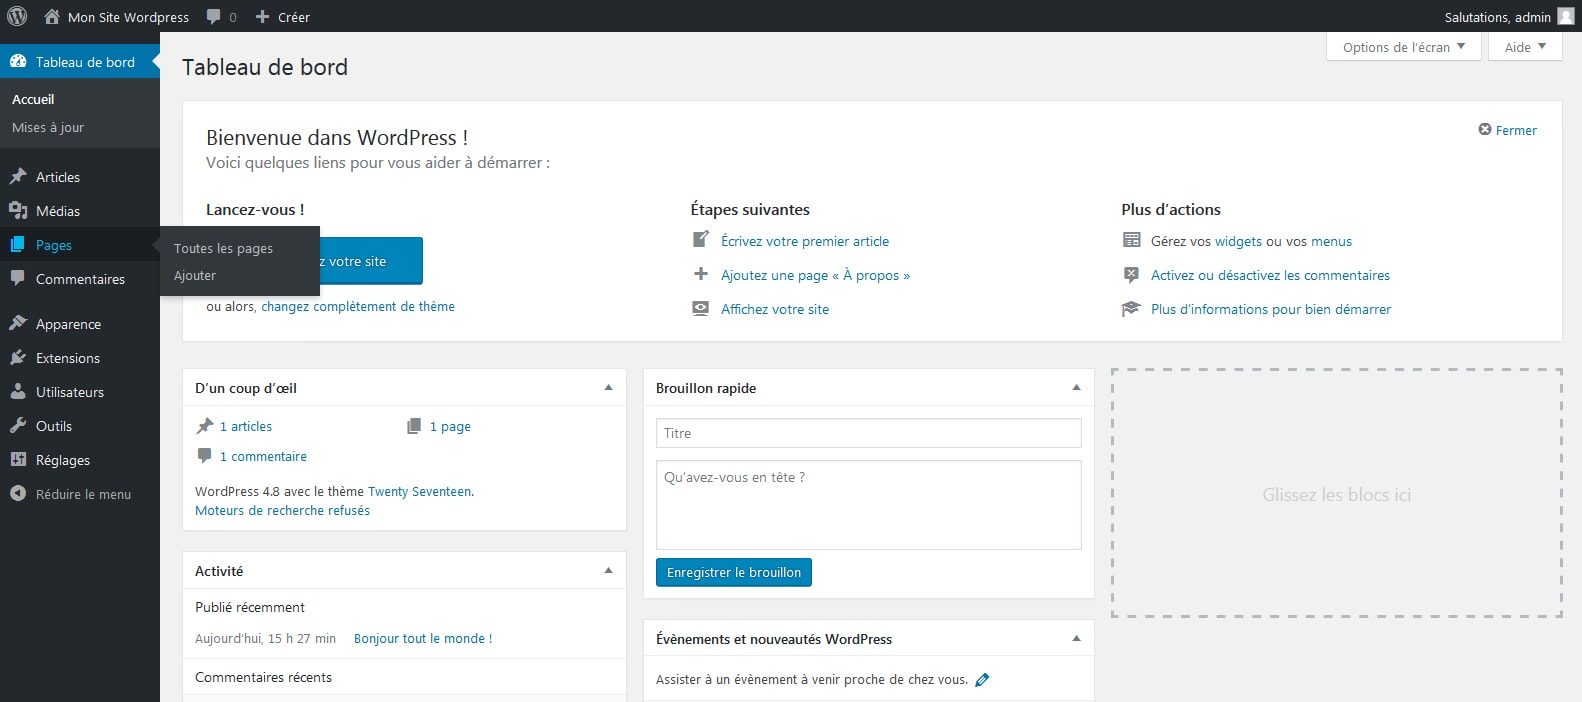 11 Reperer les fonctions de wordpress